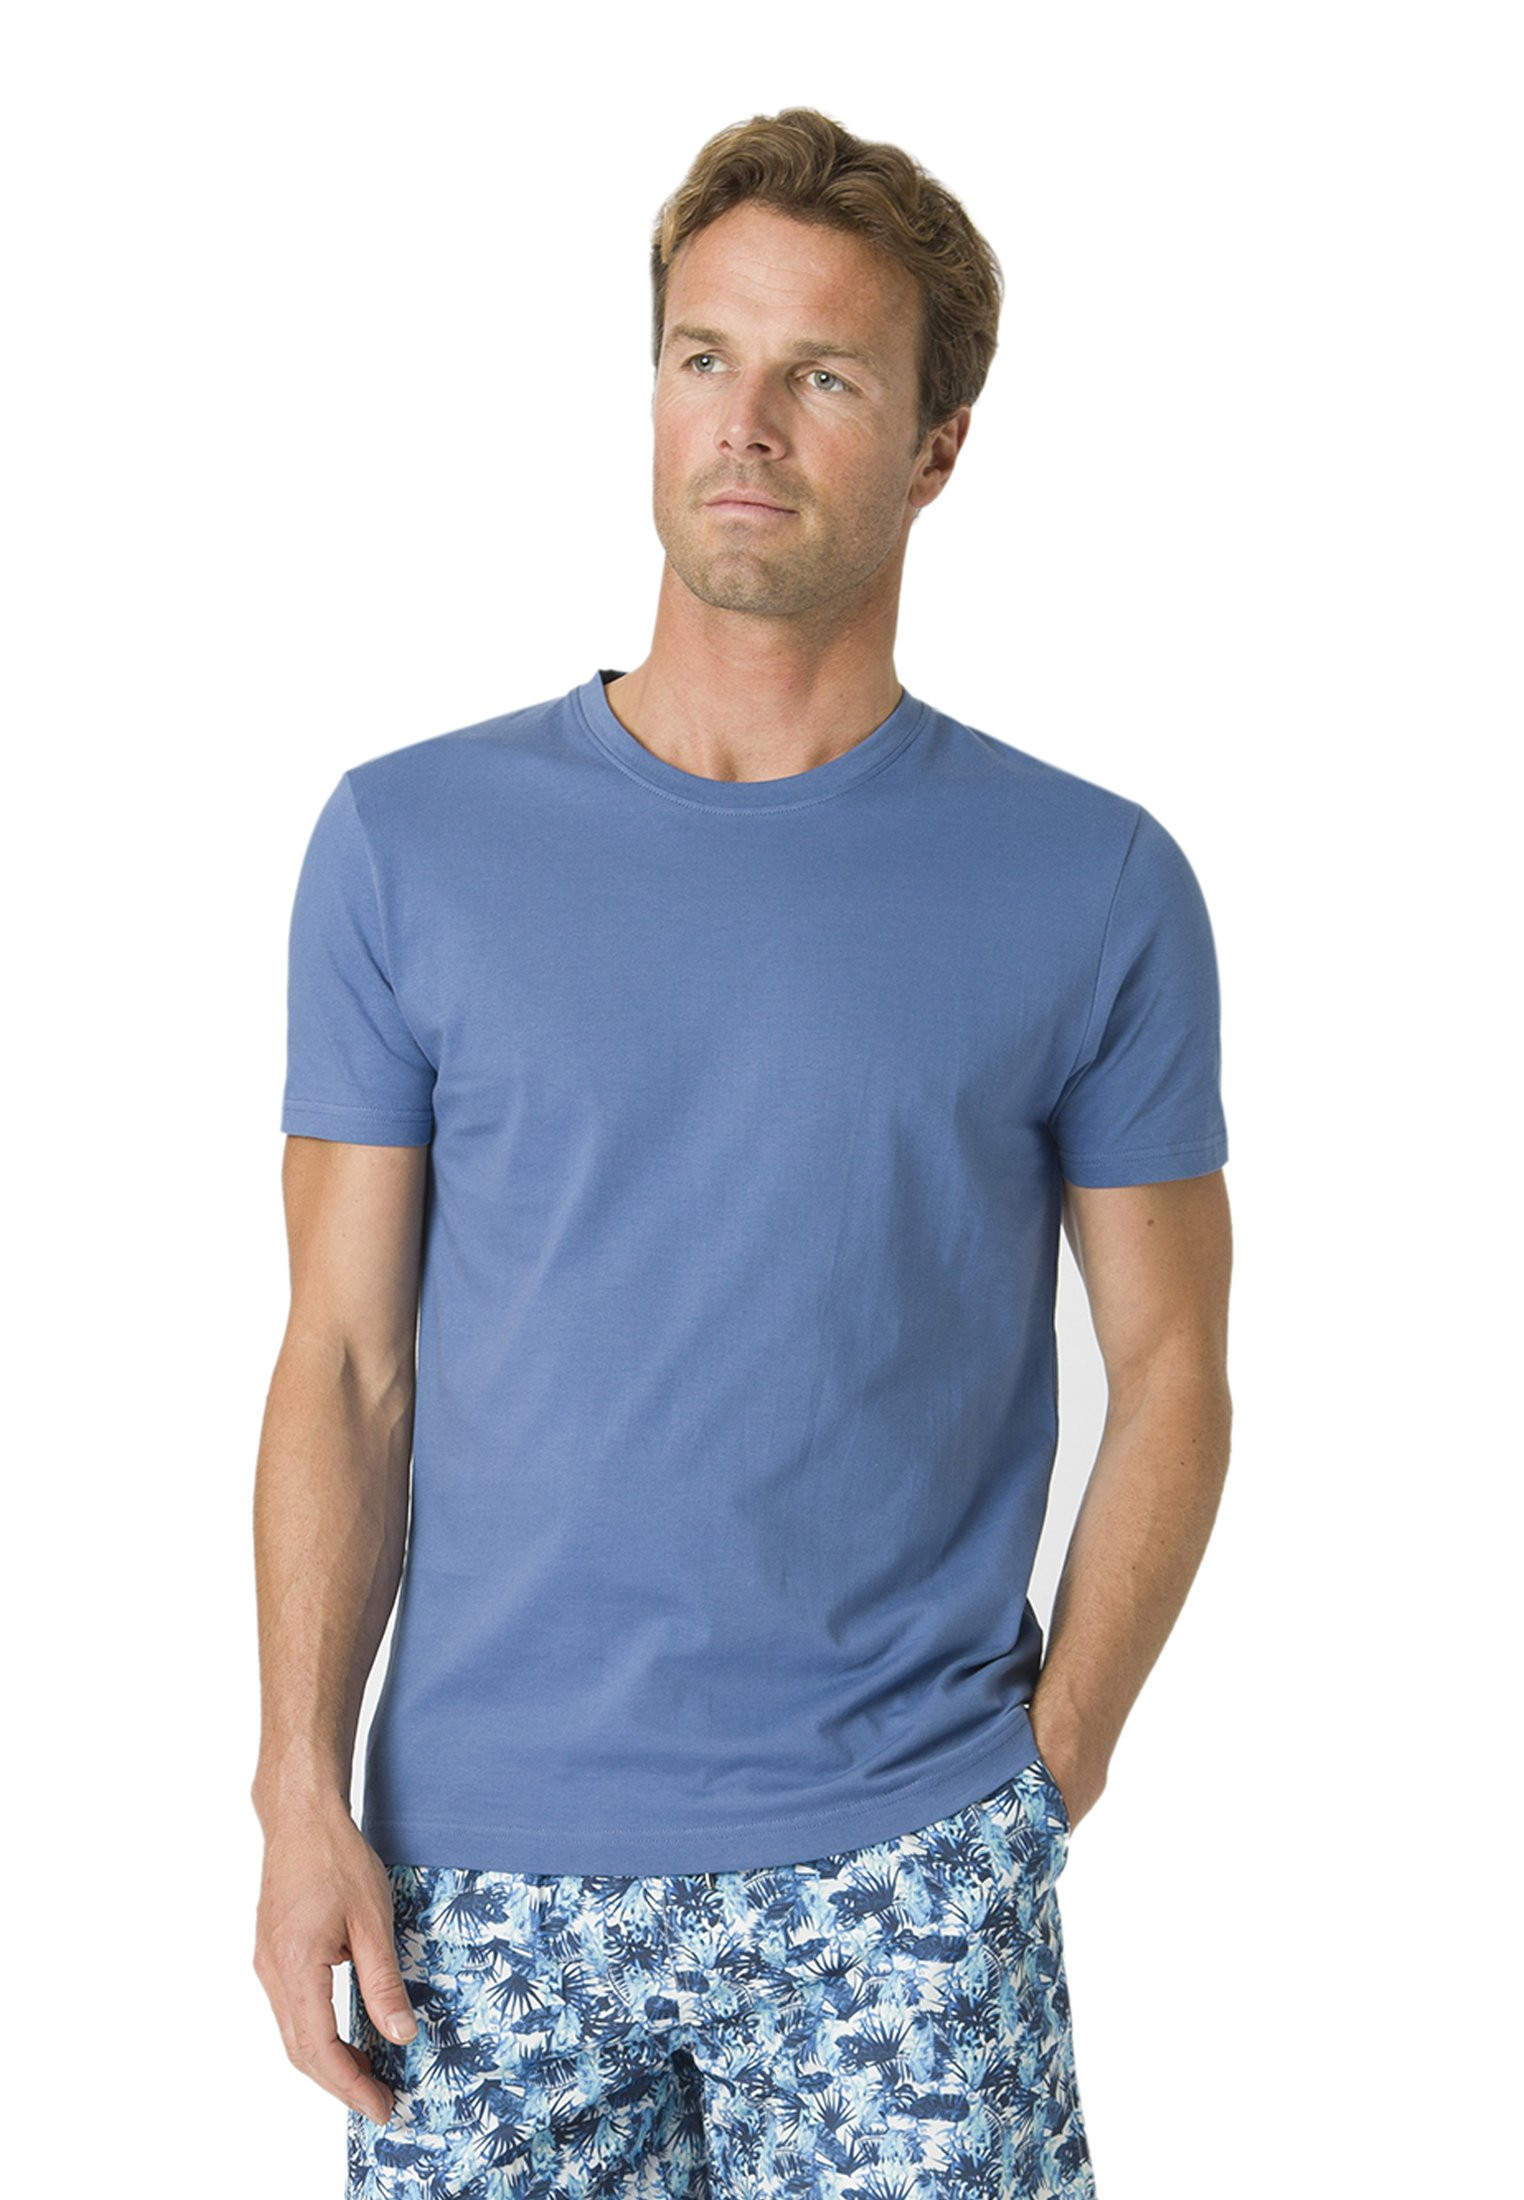 Dean Ocean Cotton T-Shirt